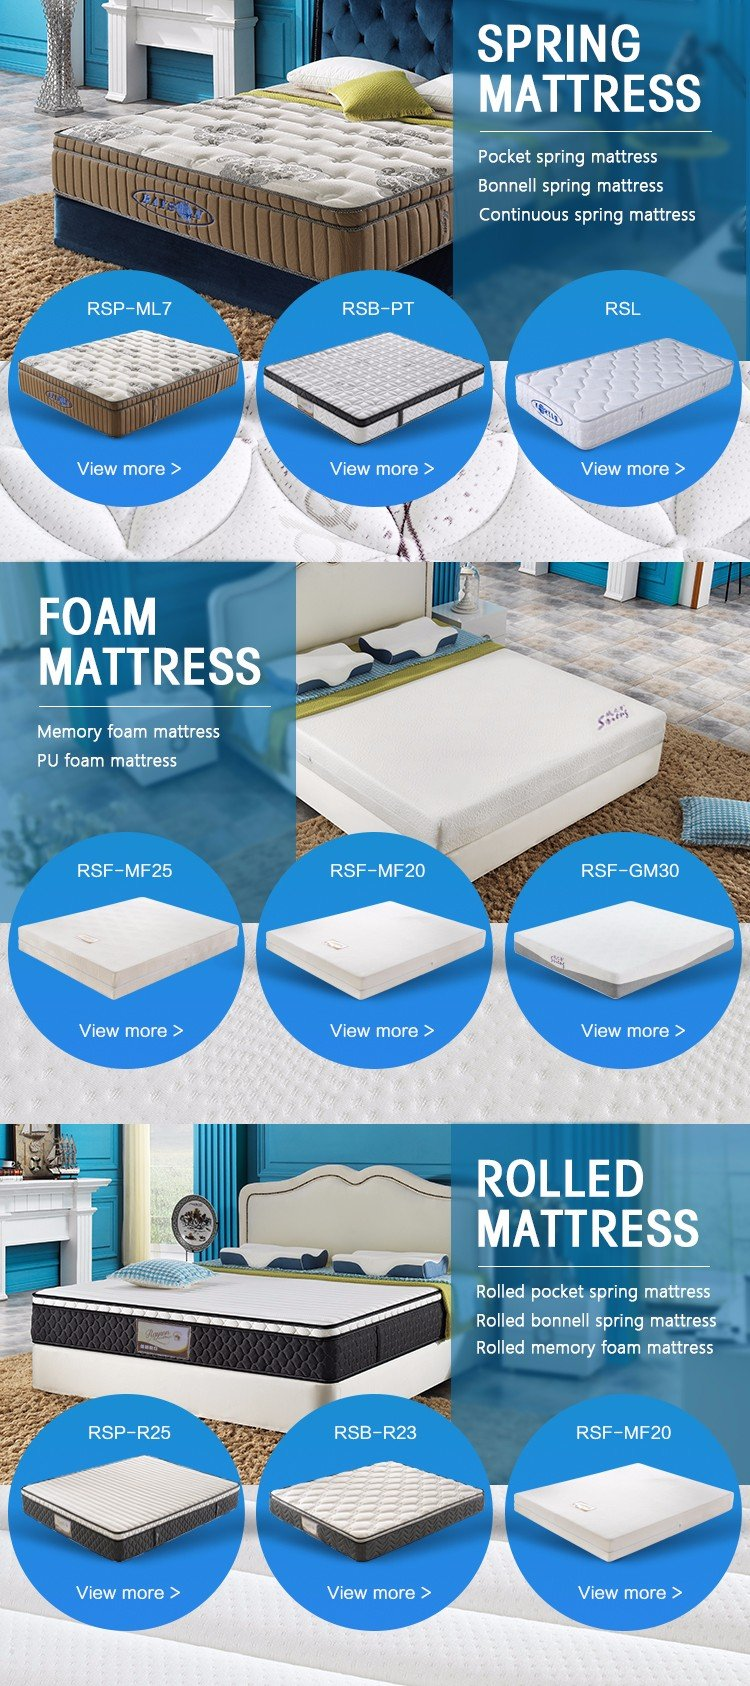 Best is spring mattress good for health royal manufacturers-9